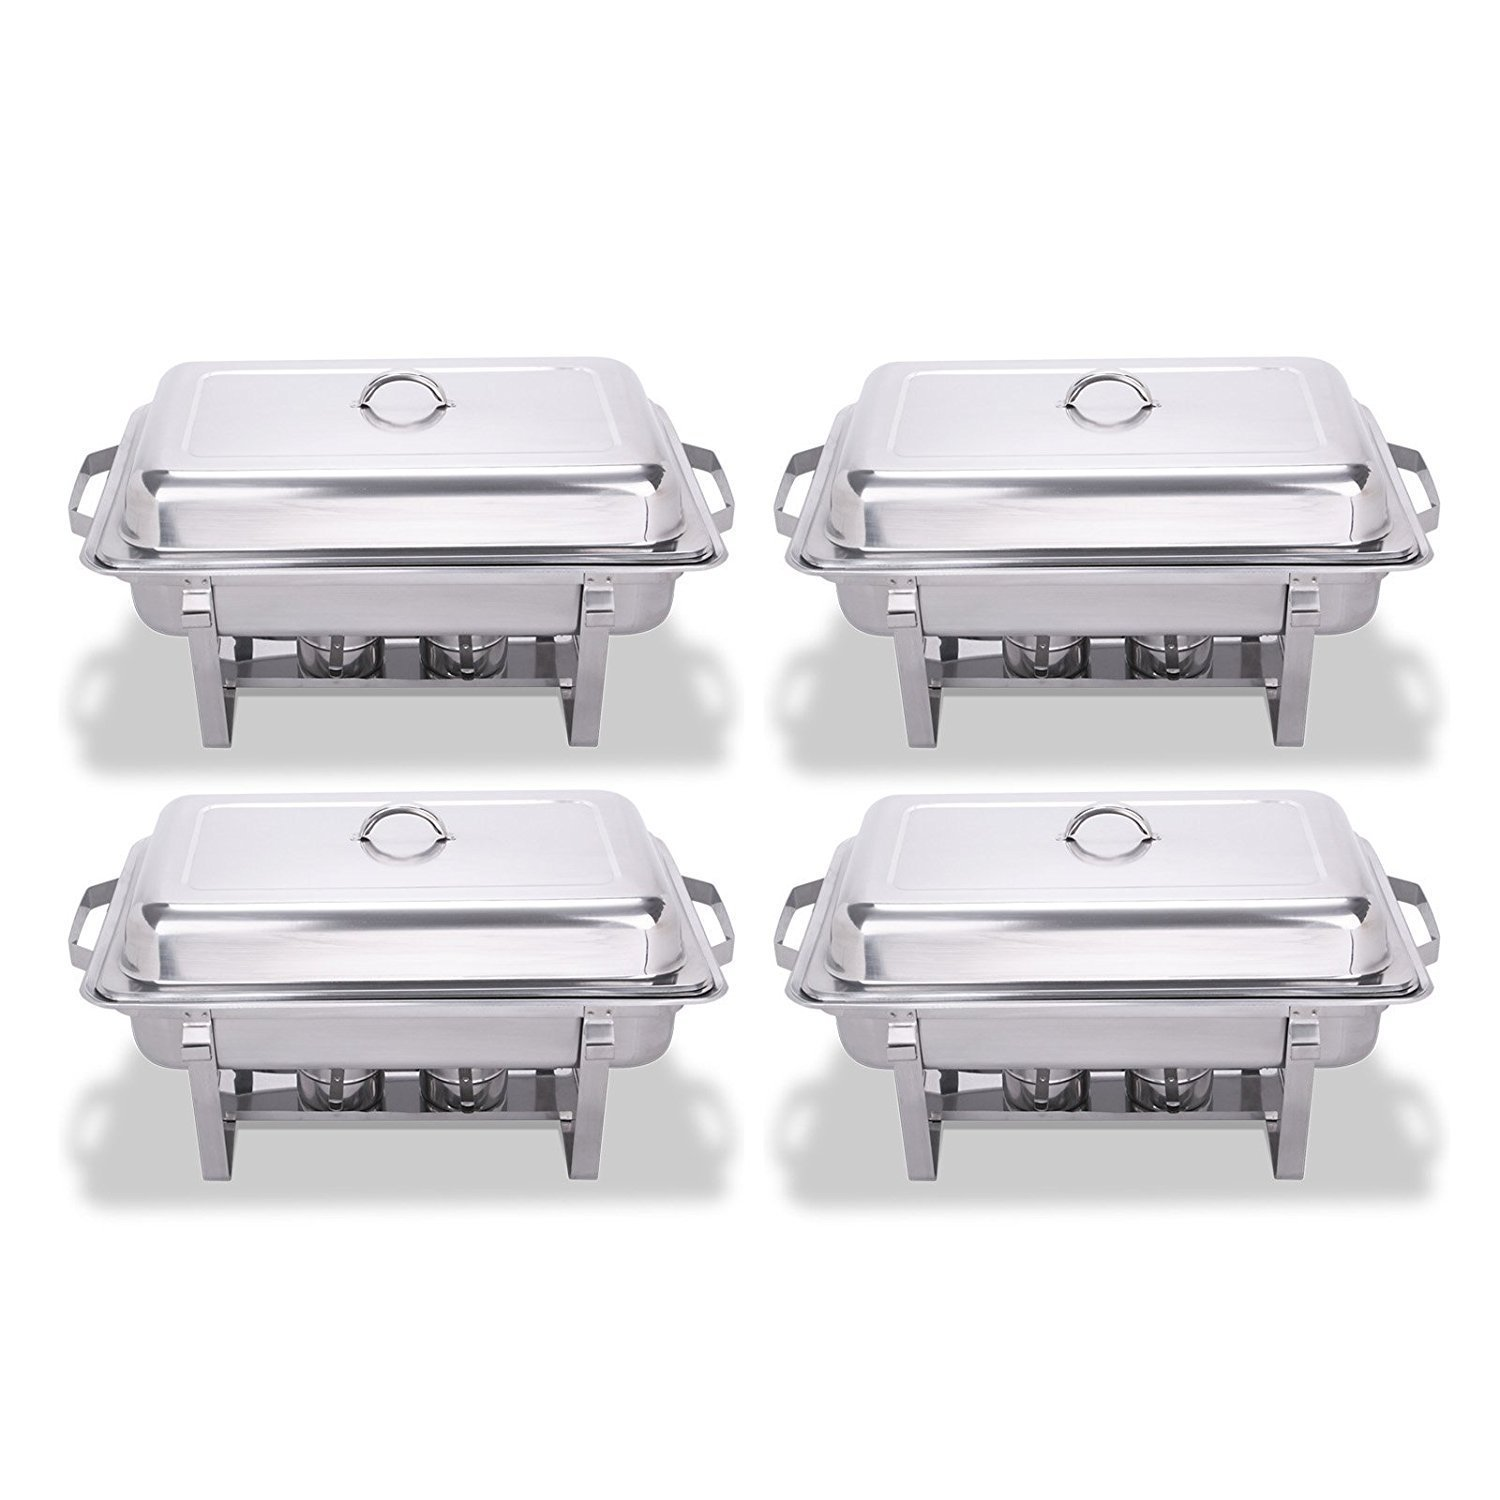 King Chafing Dish Set of 4 Stainless Steel Chafer Full Size 8 Quart Food Chafing Dishes for Catering Buffet Warmer Tray Kitchen Party Dining (Set of 4) Bonus Stackable (4)